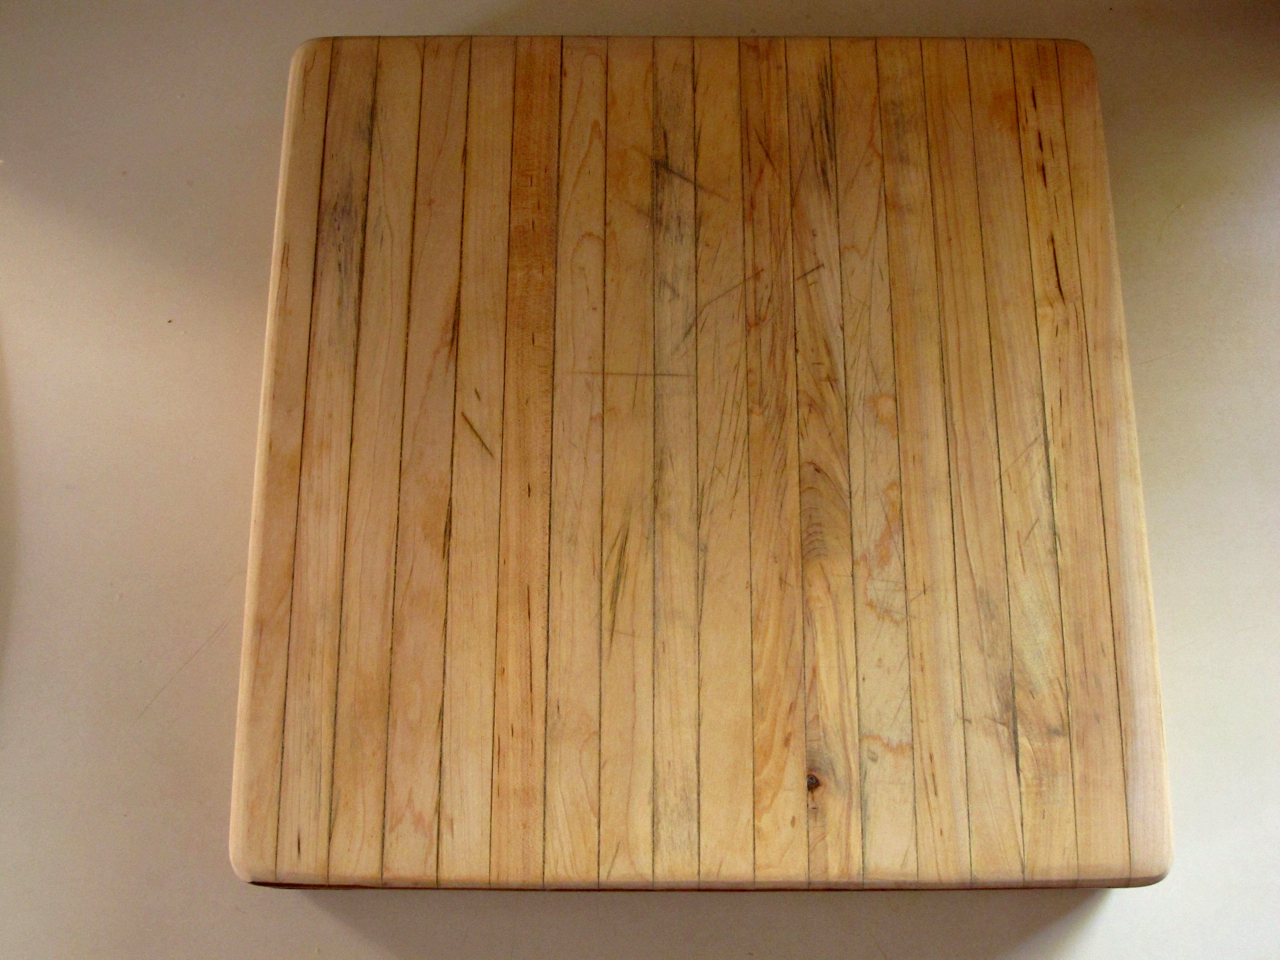 The Best Finish For Cutting Boards